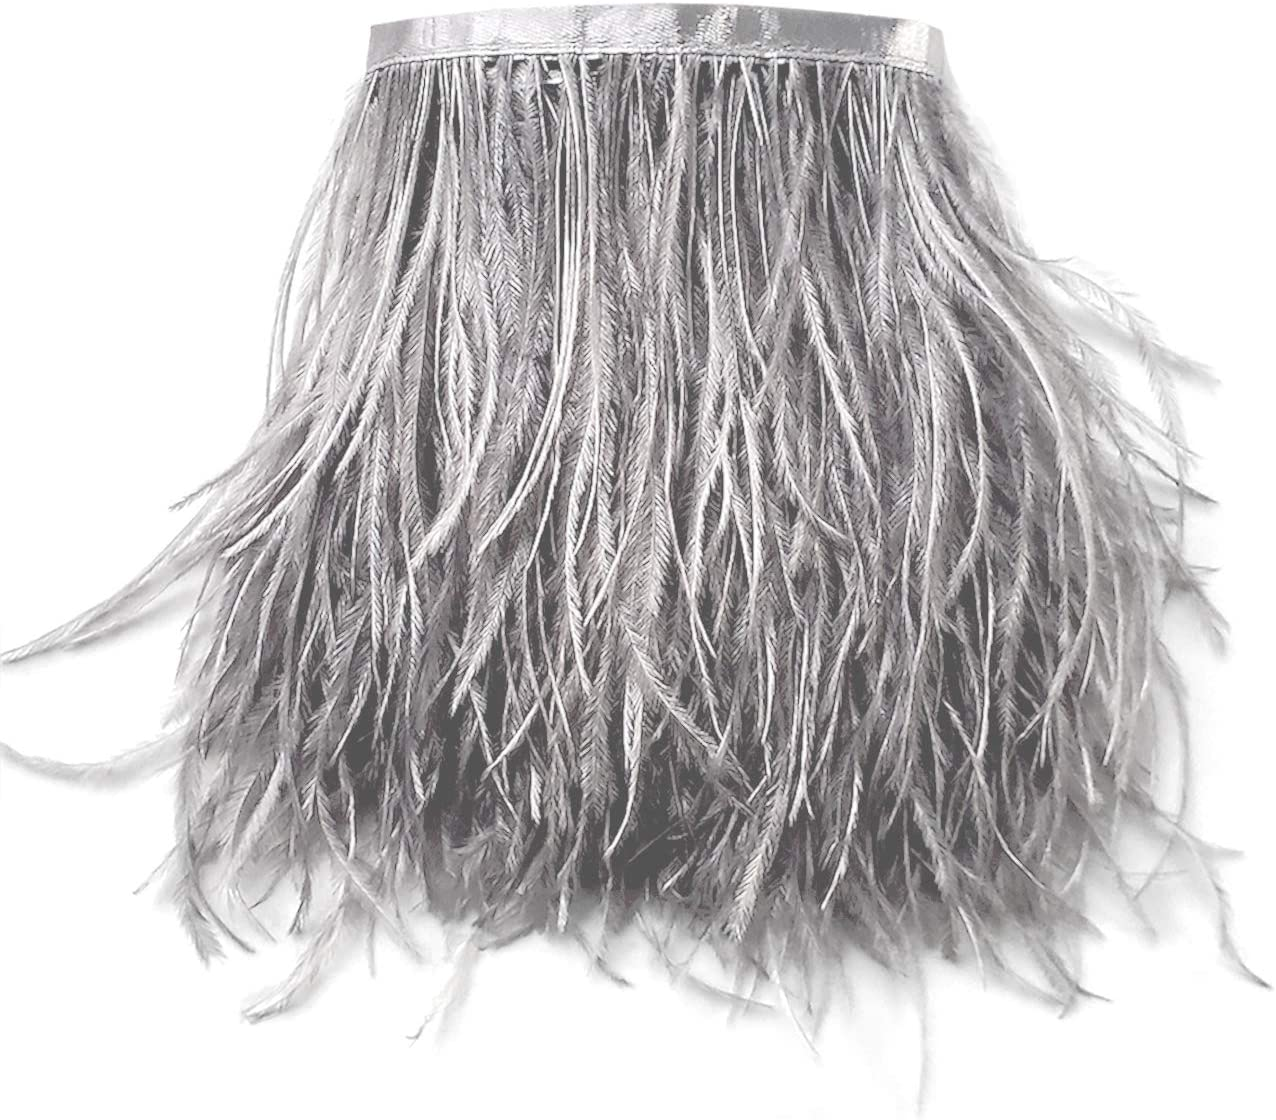 2 Yards New product 5-6inch Dyed Ostrich Feathers DIY Free shipping on posting reviews Dress for Trim Fringe